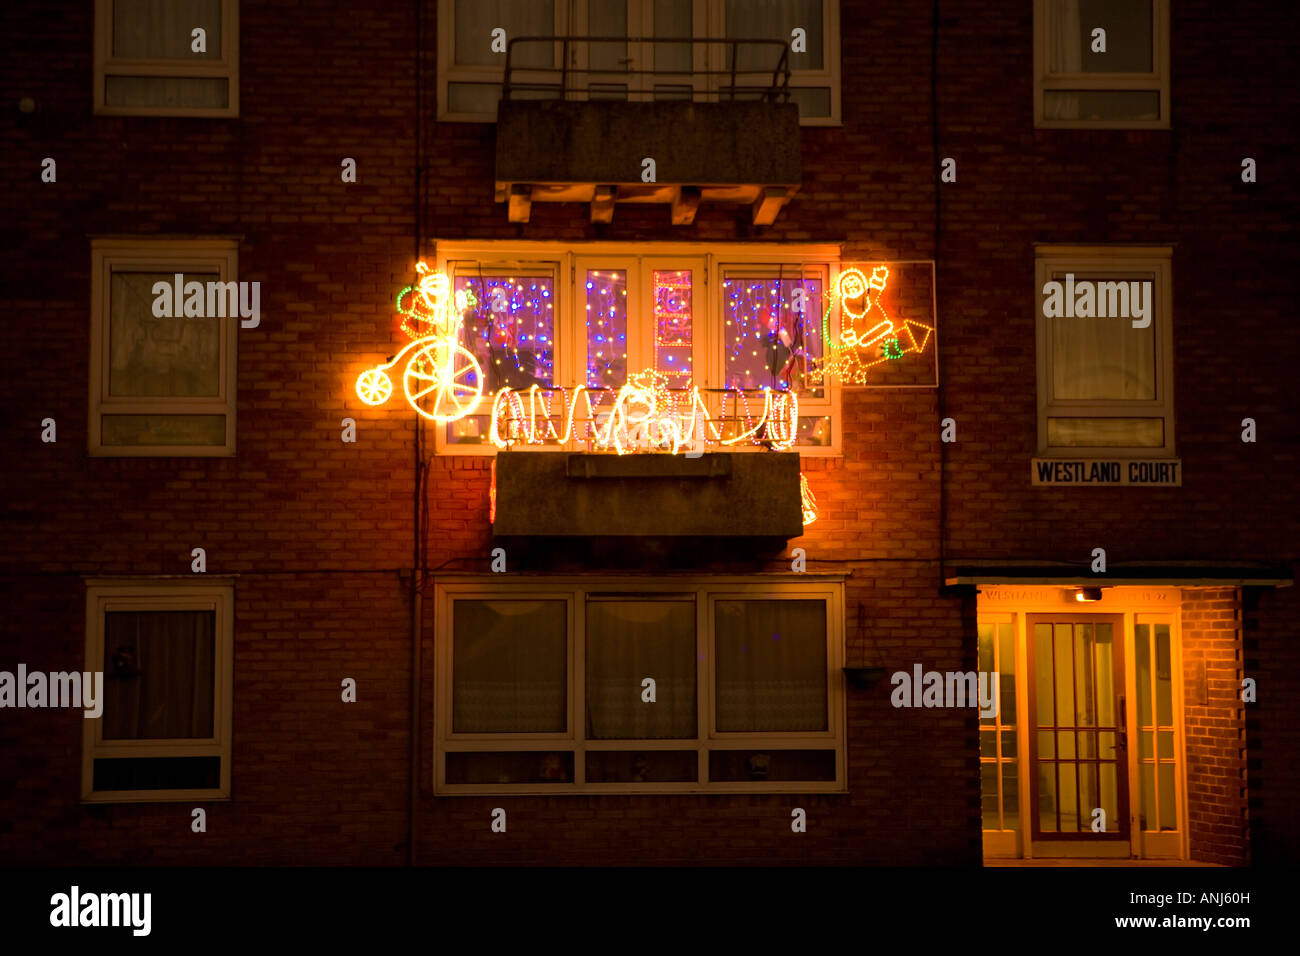 Christmas Lights At Night Decorating A Balcony In A Block